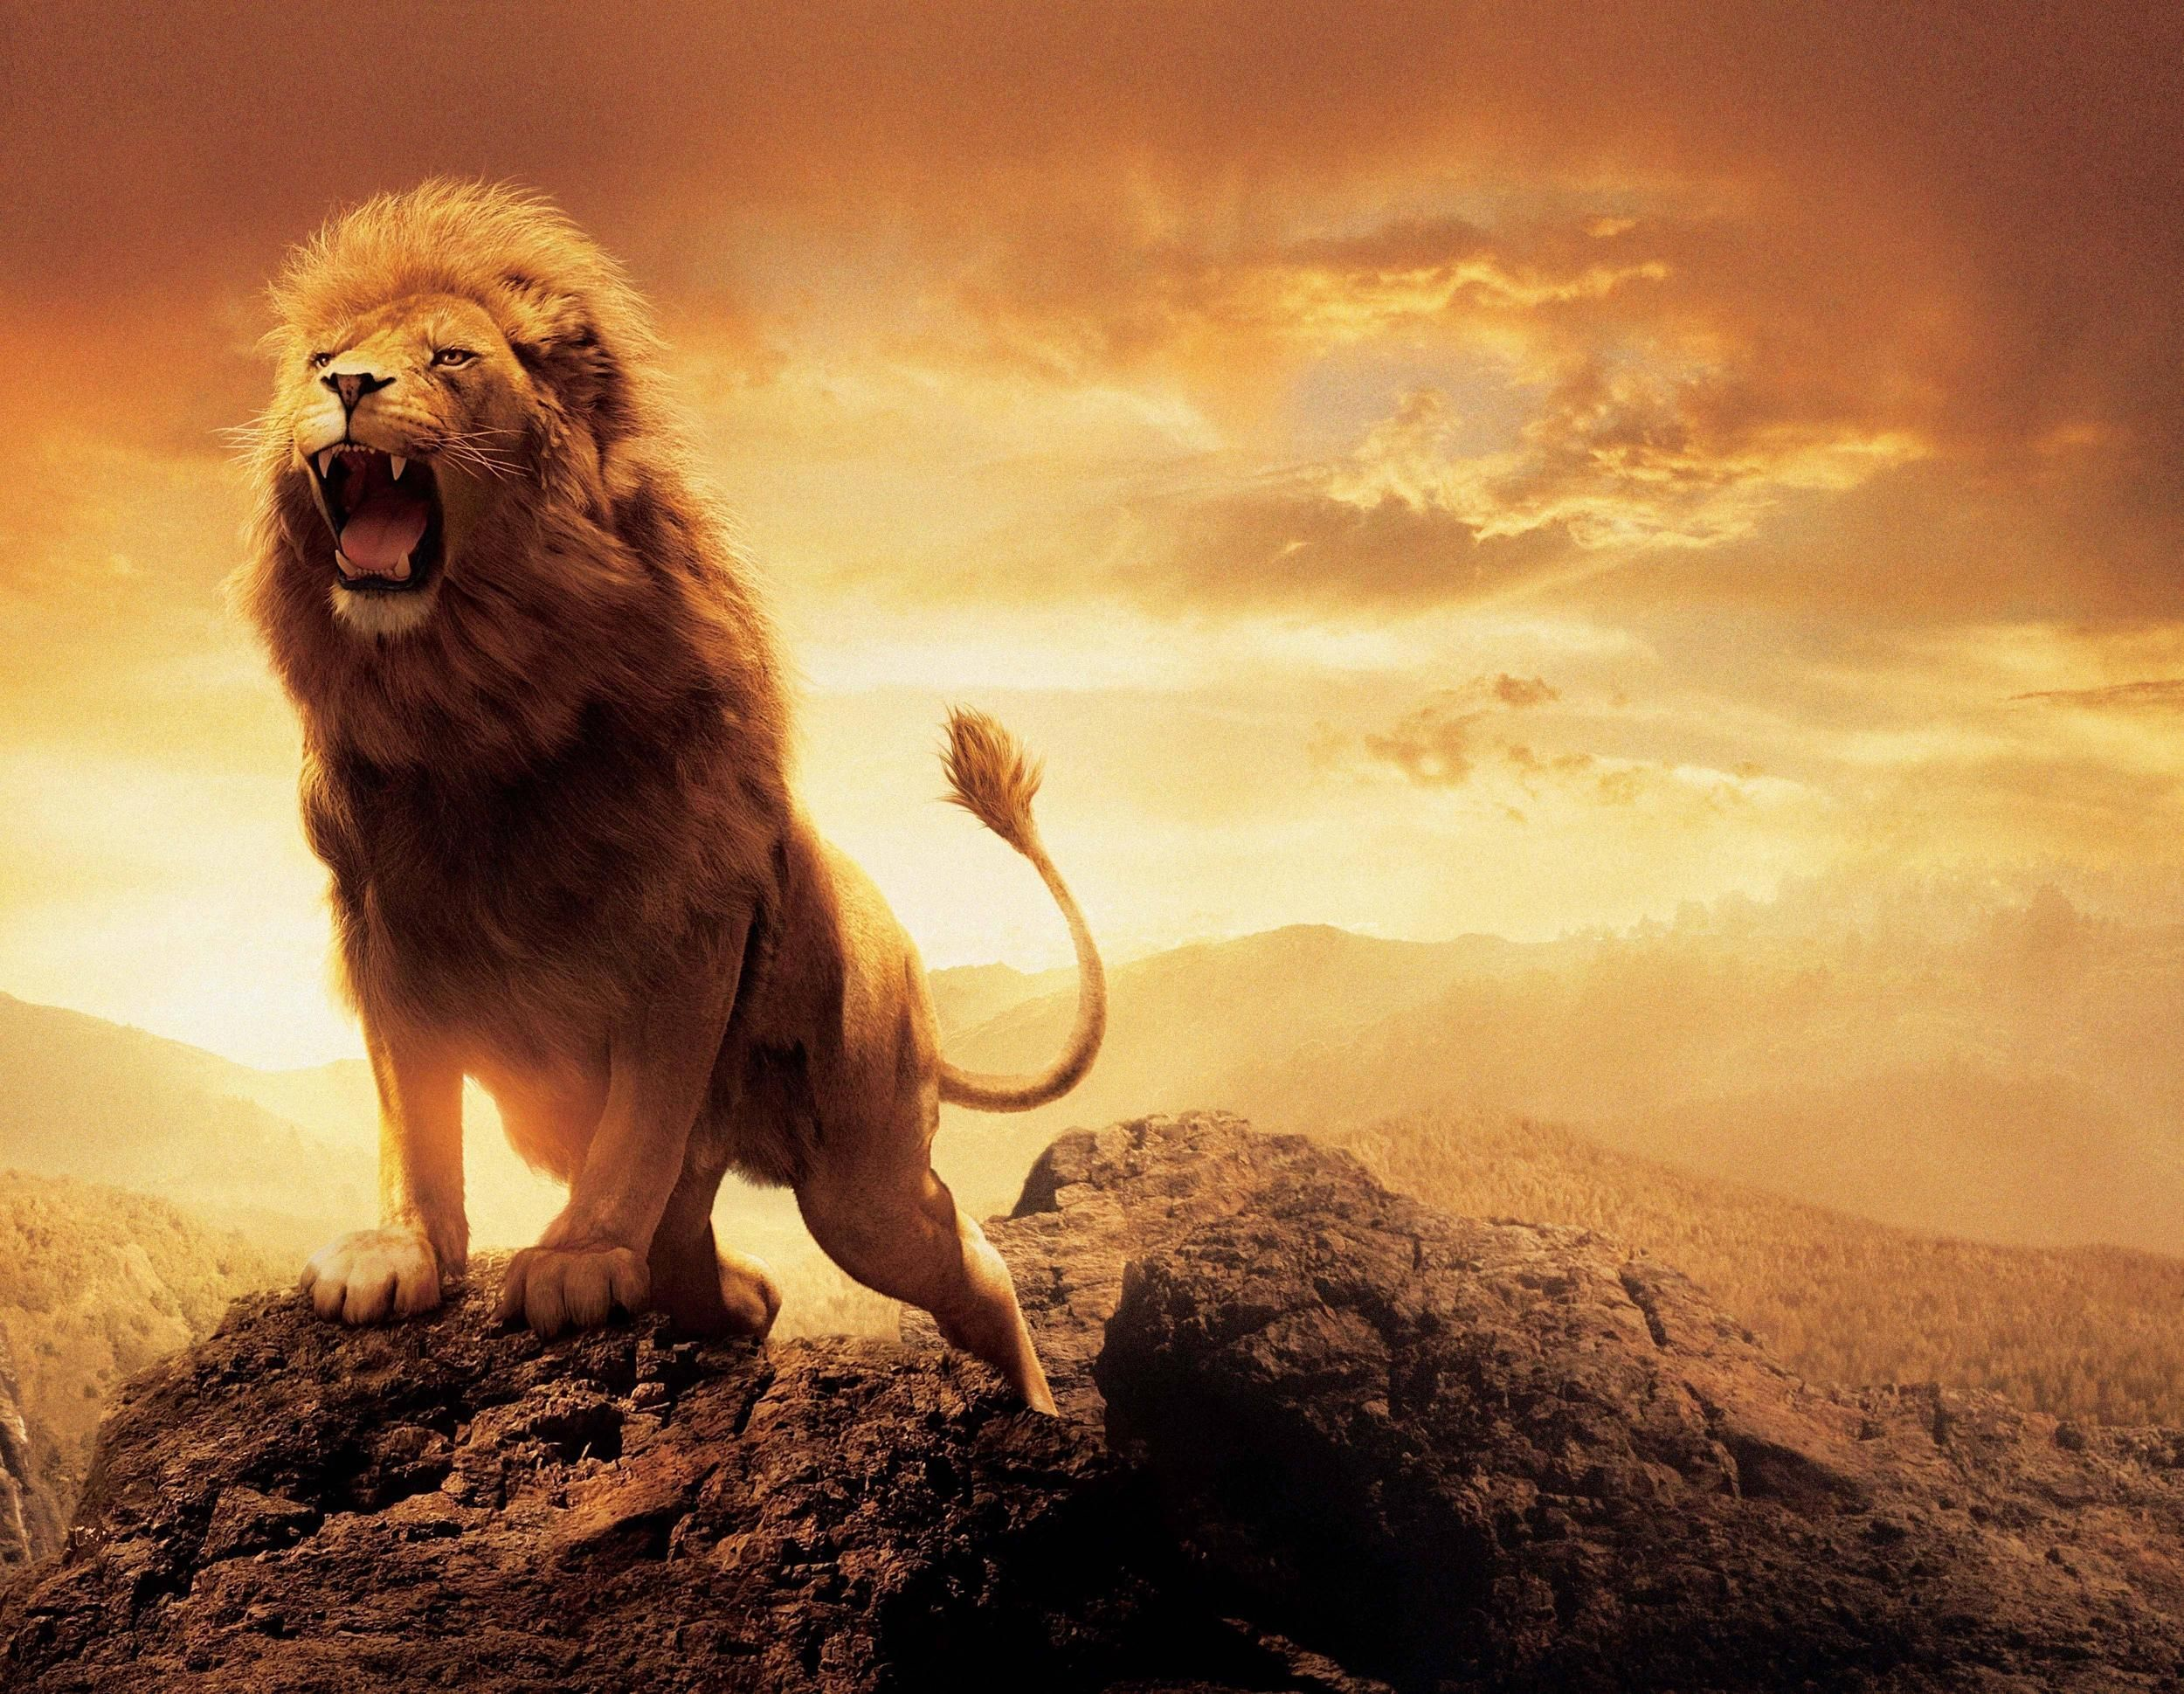 Images Of Lions Wallpapers 30 Wallpapers Hd Wallpapers Lion